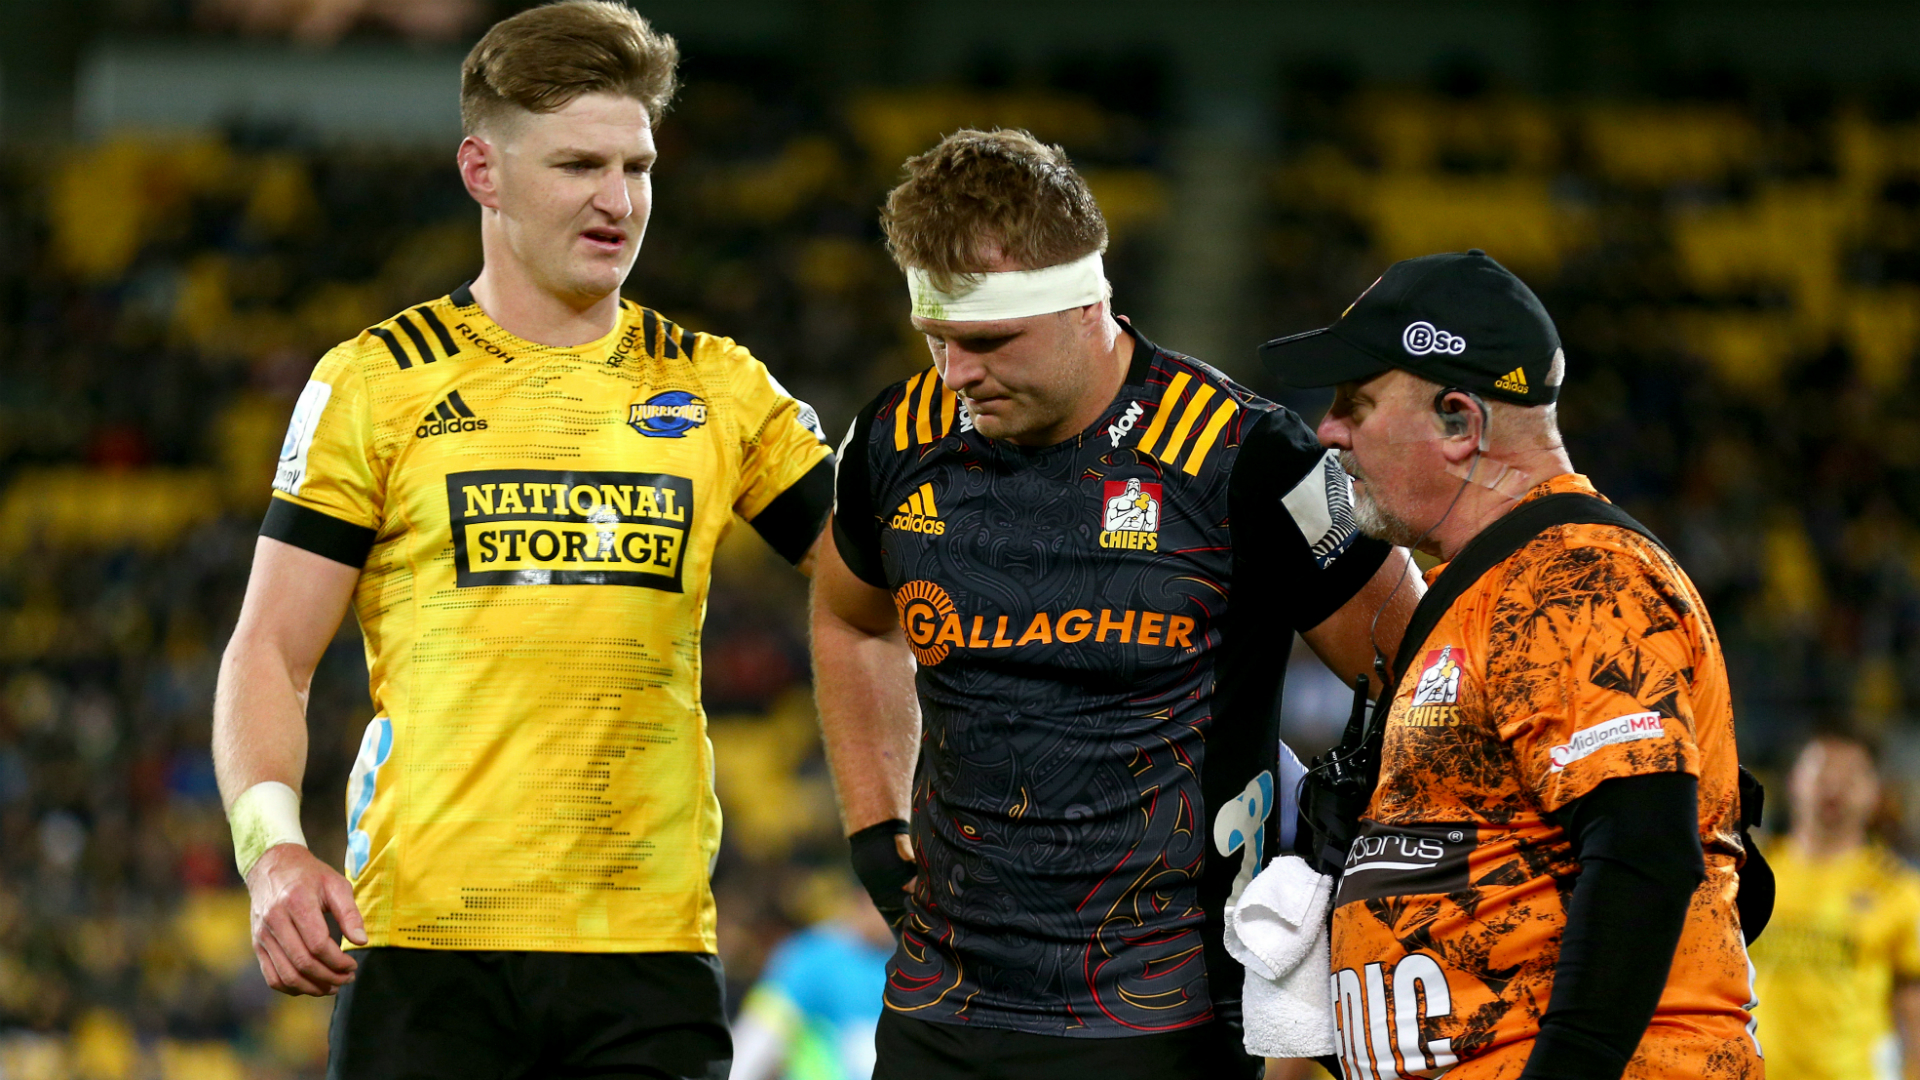 Hurricanes 31-18 Chiefs: Cane scare compounds misery as Gatland switches focus to Lions